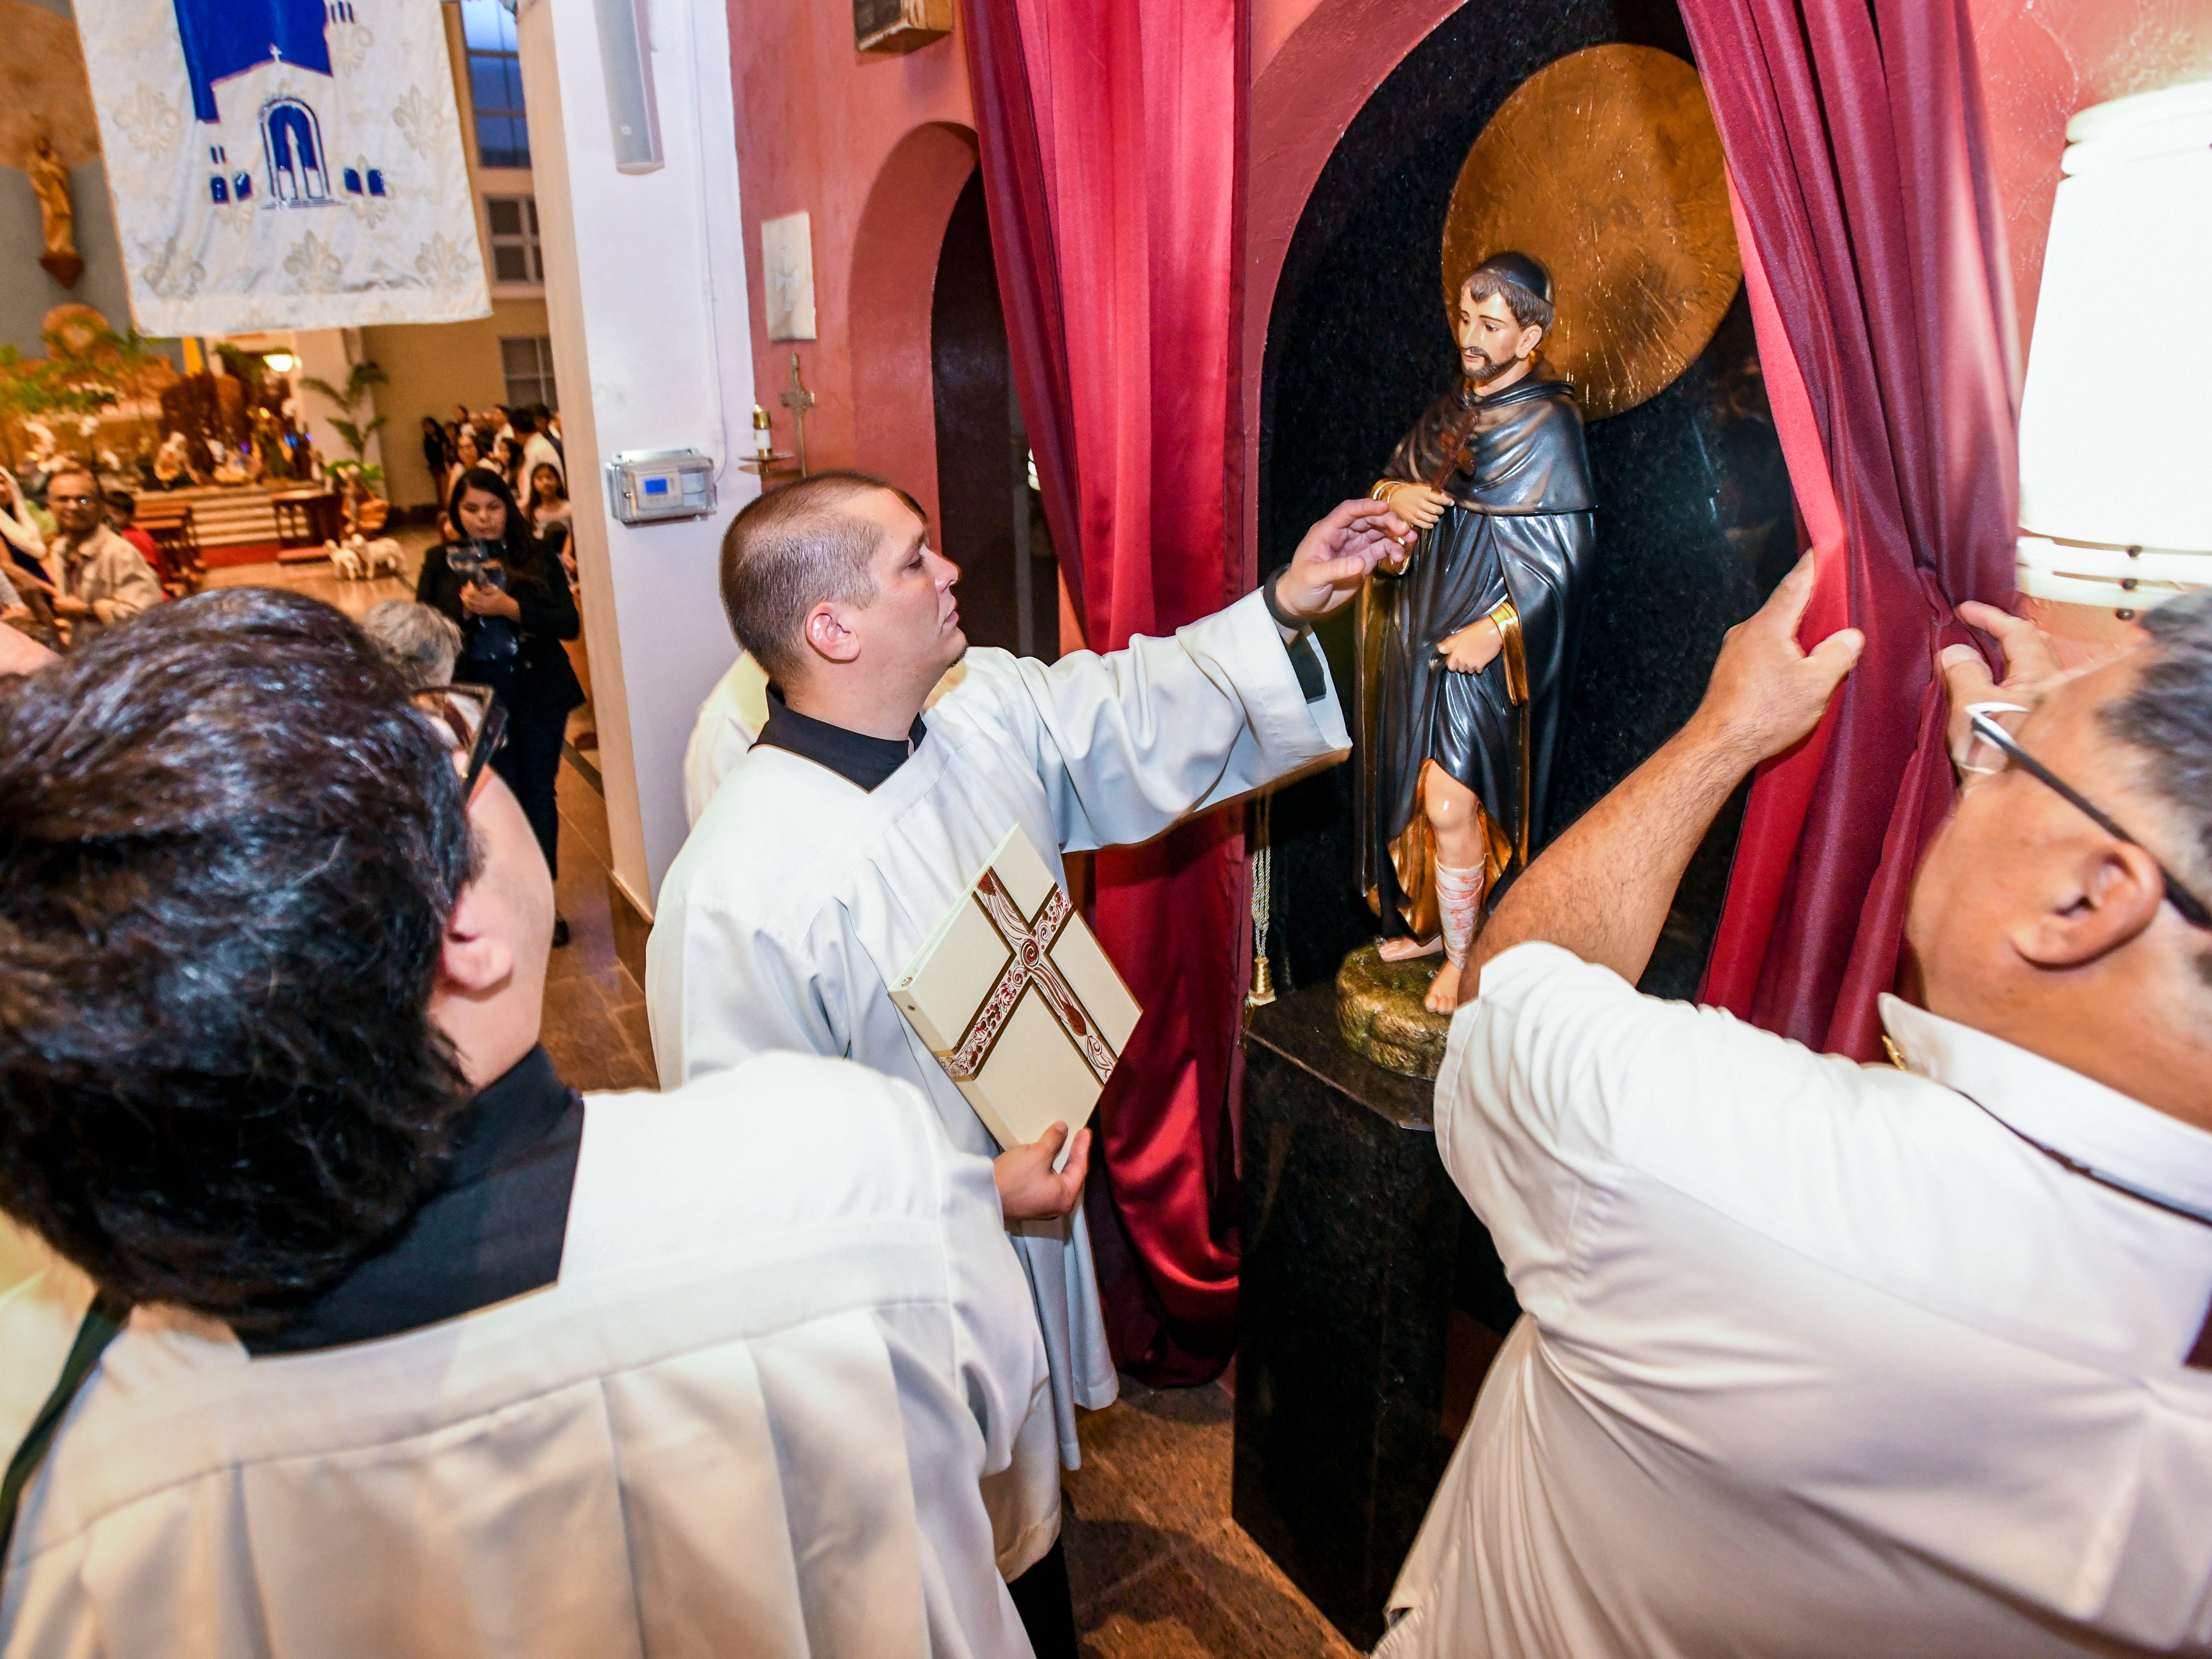 Curtains are pulled back to reveal the newly enthroned statue of St. Peregrine during the inaugural devotion Mass to the saint at the Dulce Nombre de Maria Cathedral-Basilica in Hagåtña on Wednesday, Jan. 9, 2019. The Archdiocese of Agaña announced that Mass will be at 6:00 p.m. on Wednesdays for cancer patients, their families and all who would like to participate in celebration of the Eucharist and prayers. Confession will also be offered before each Mass, as well as an anointing of the sick, said Monsignor James Benavente, pastor of the Cathedral-Basilica.